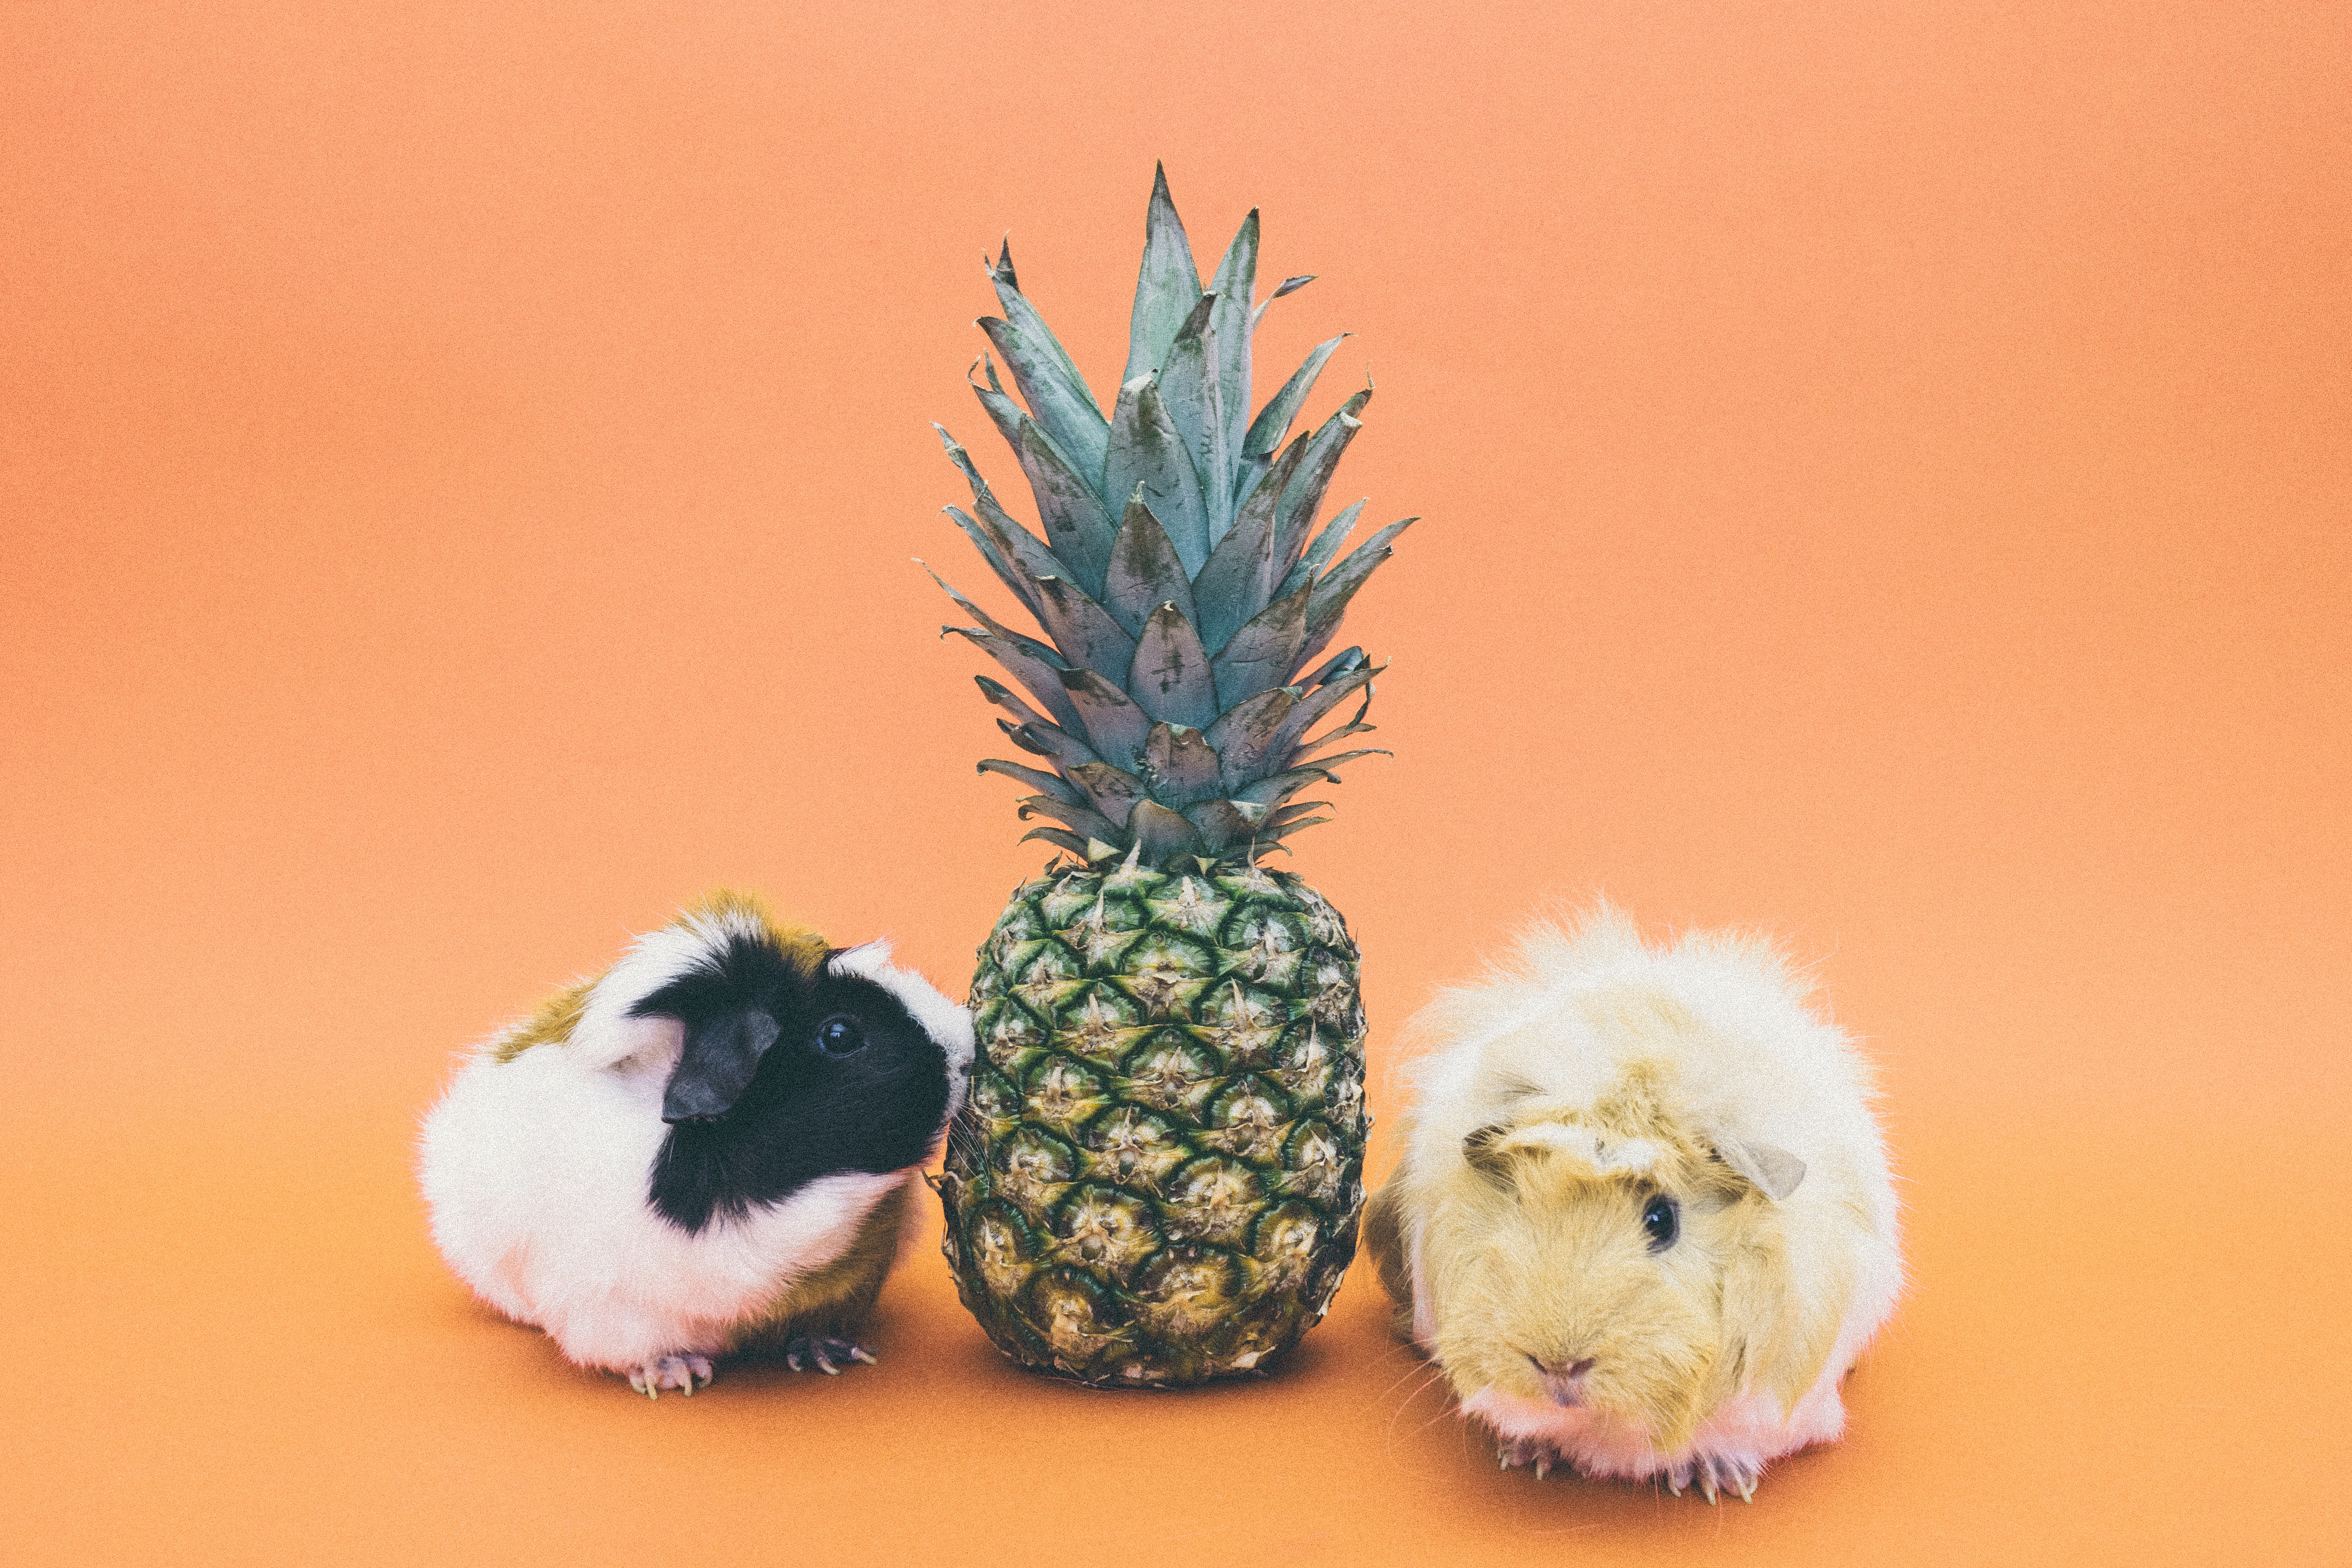 Download mobile wallpaper Rodent, Pineapple, Animals, Guinea Pig for free.